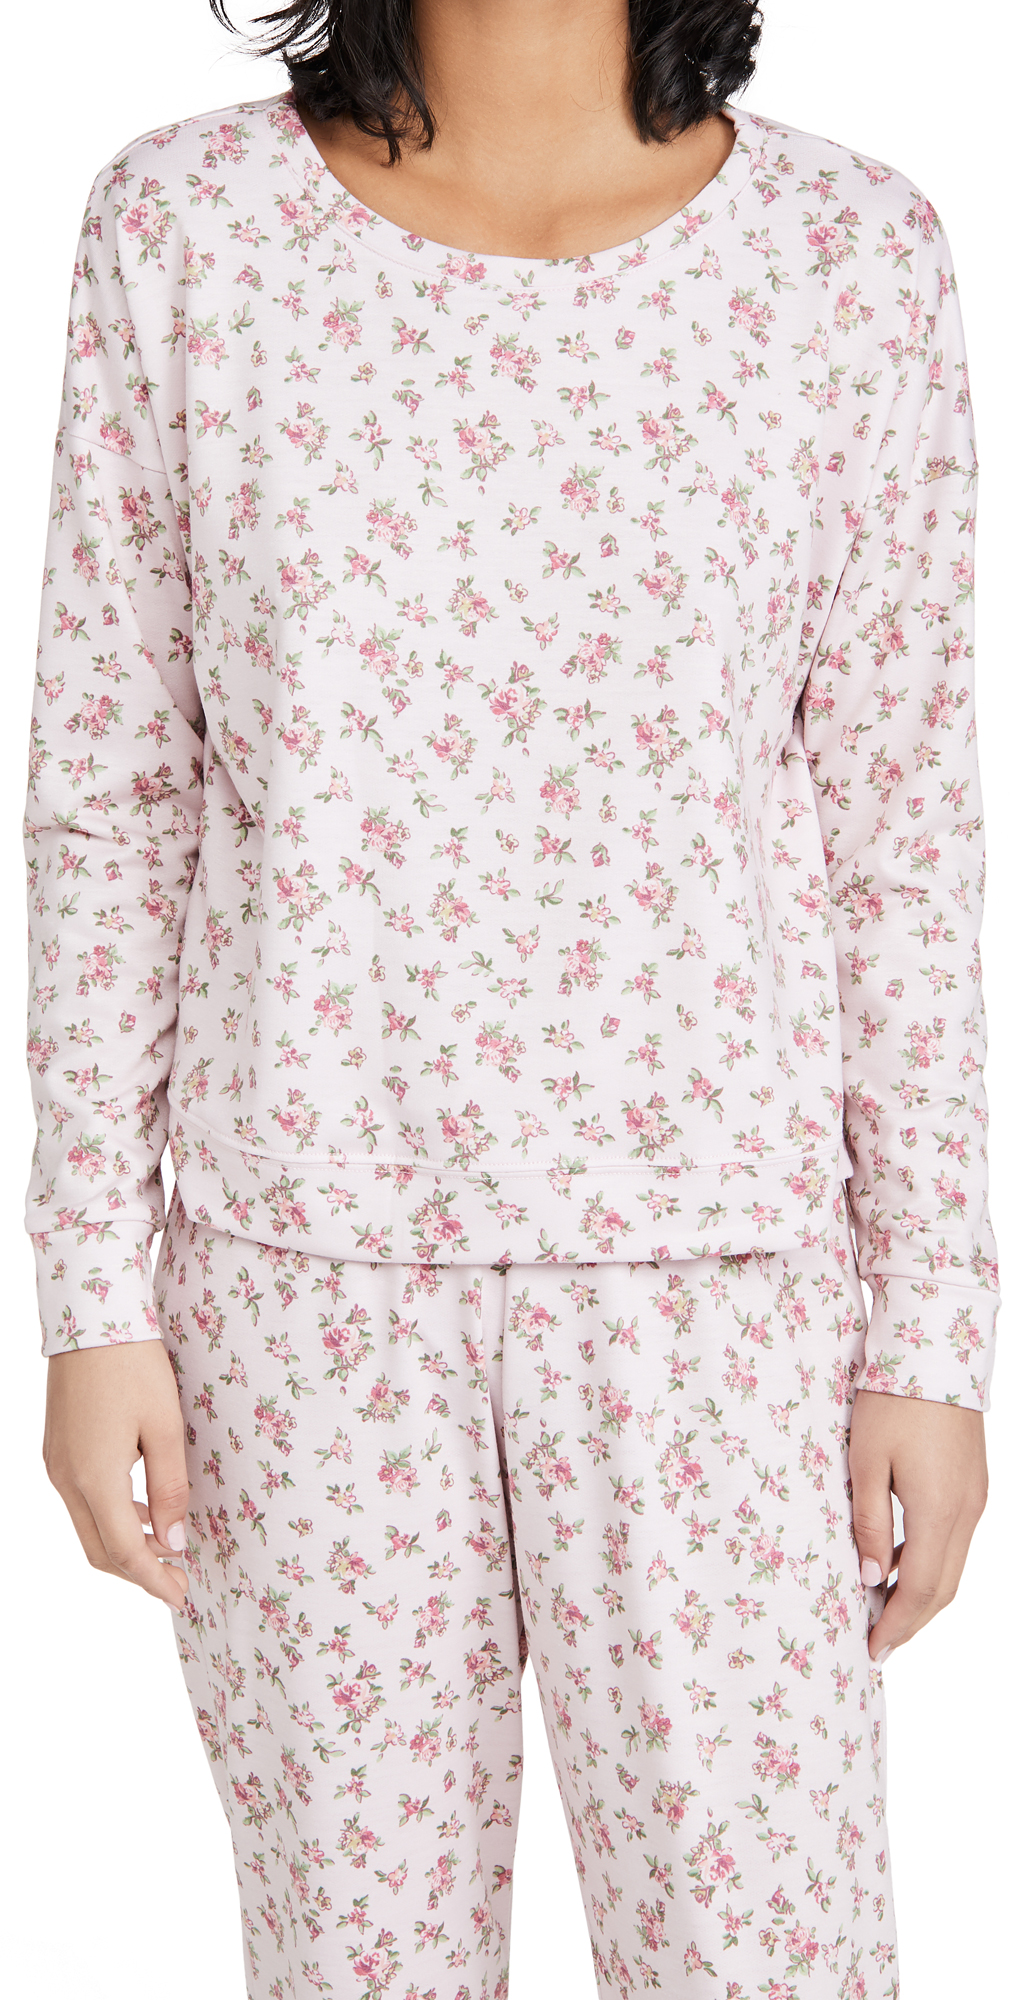 Onzie High Low Floral Sweatshirt